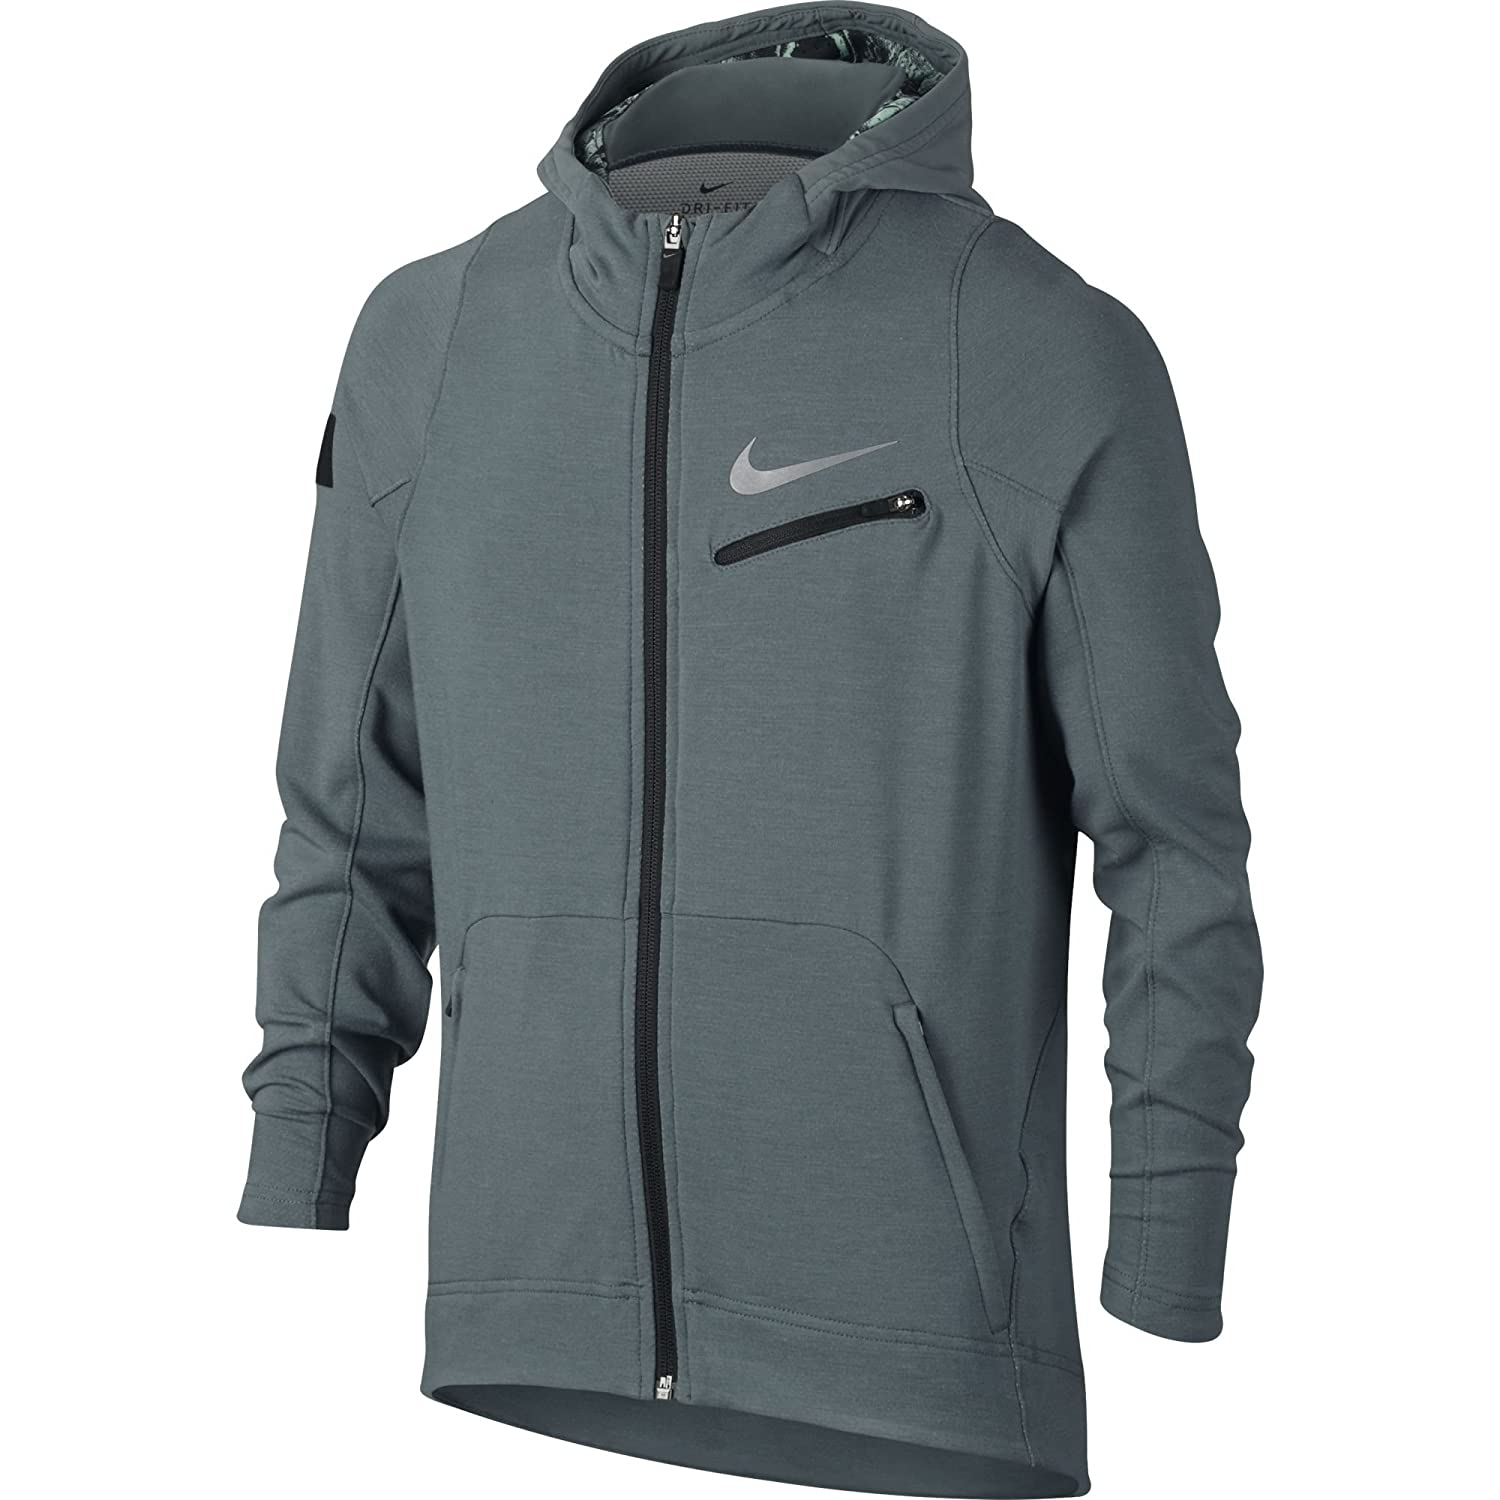 5af4a44a5c78 Amazon.com  Nike Boy s Therma KD Hyper Elite Hoodie Hasta Black Metallic  Silver Size Small  Sports   Outdoors